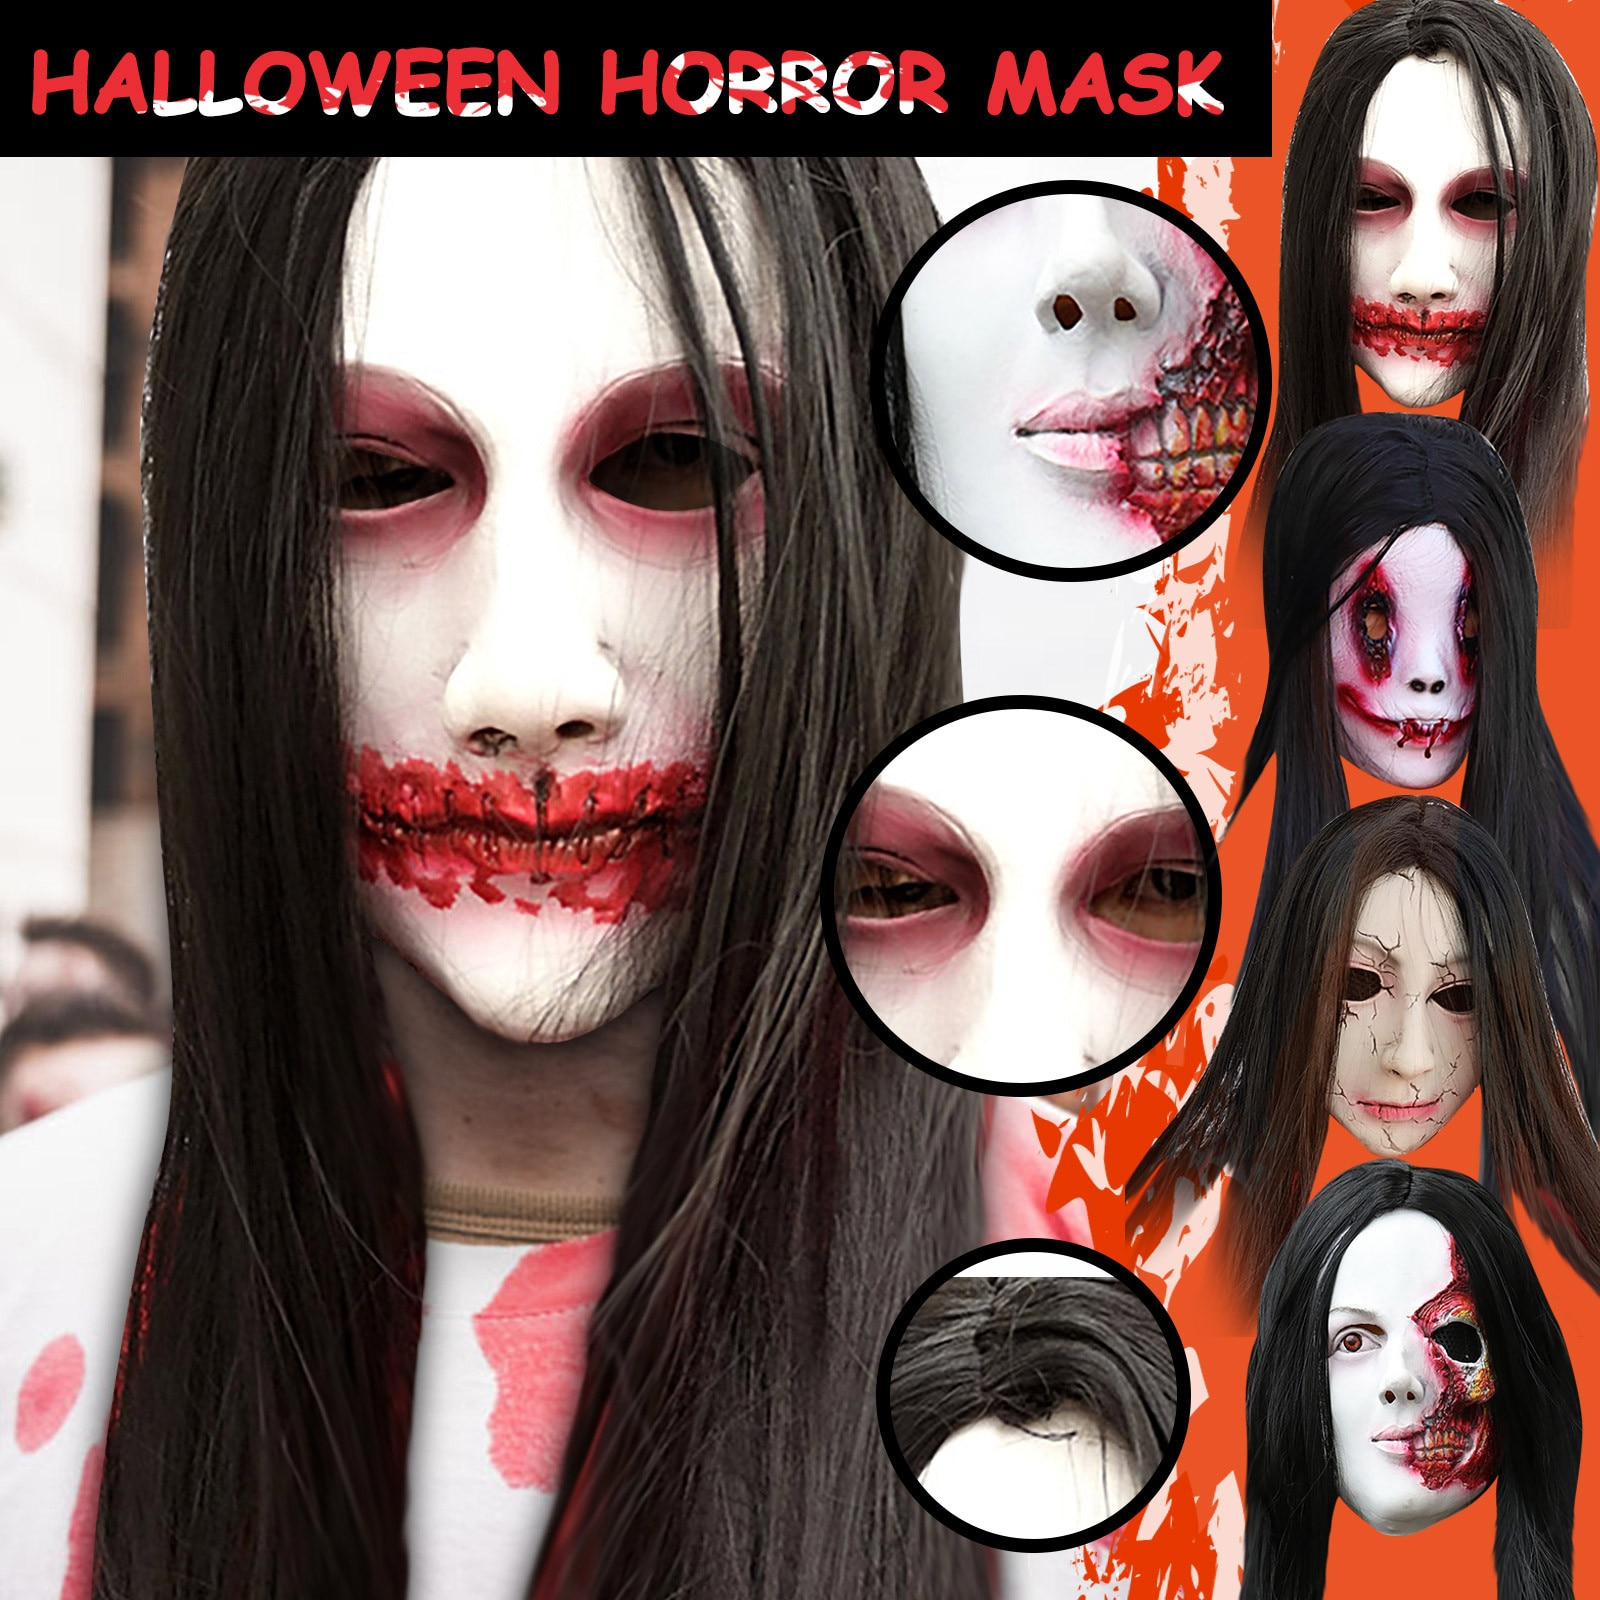 Halloween Scary Face Ghost Mask Creepy Black Long Wig Mask Party Horror Mask For Costume Party Shock